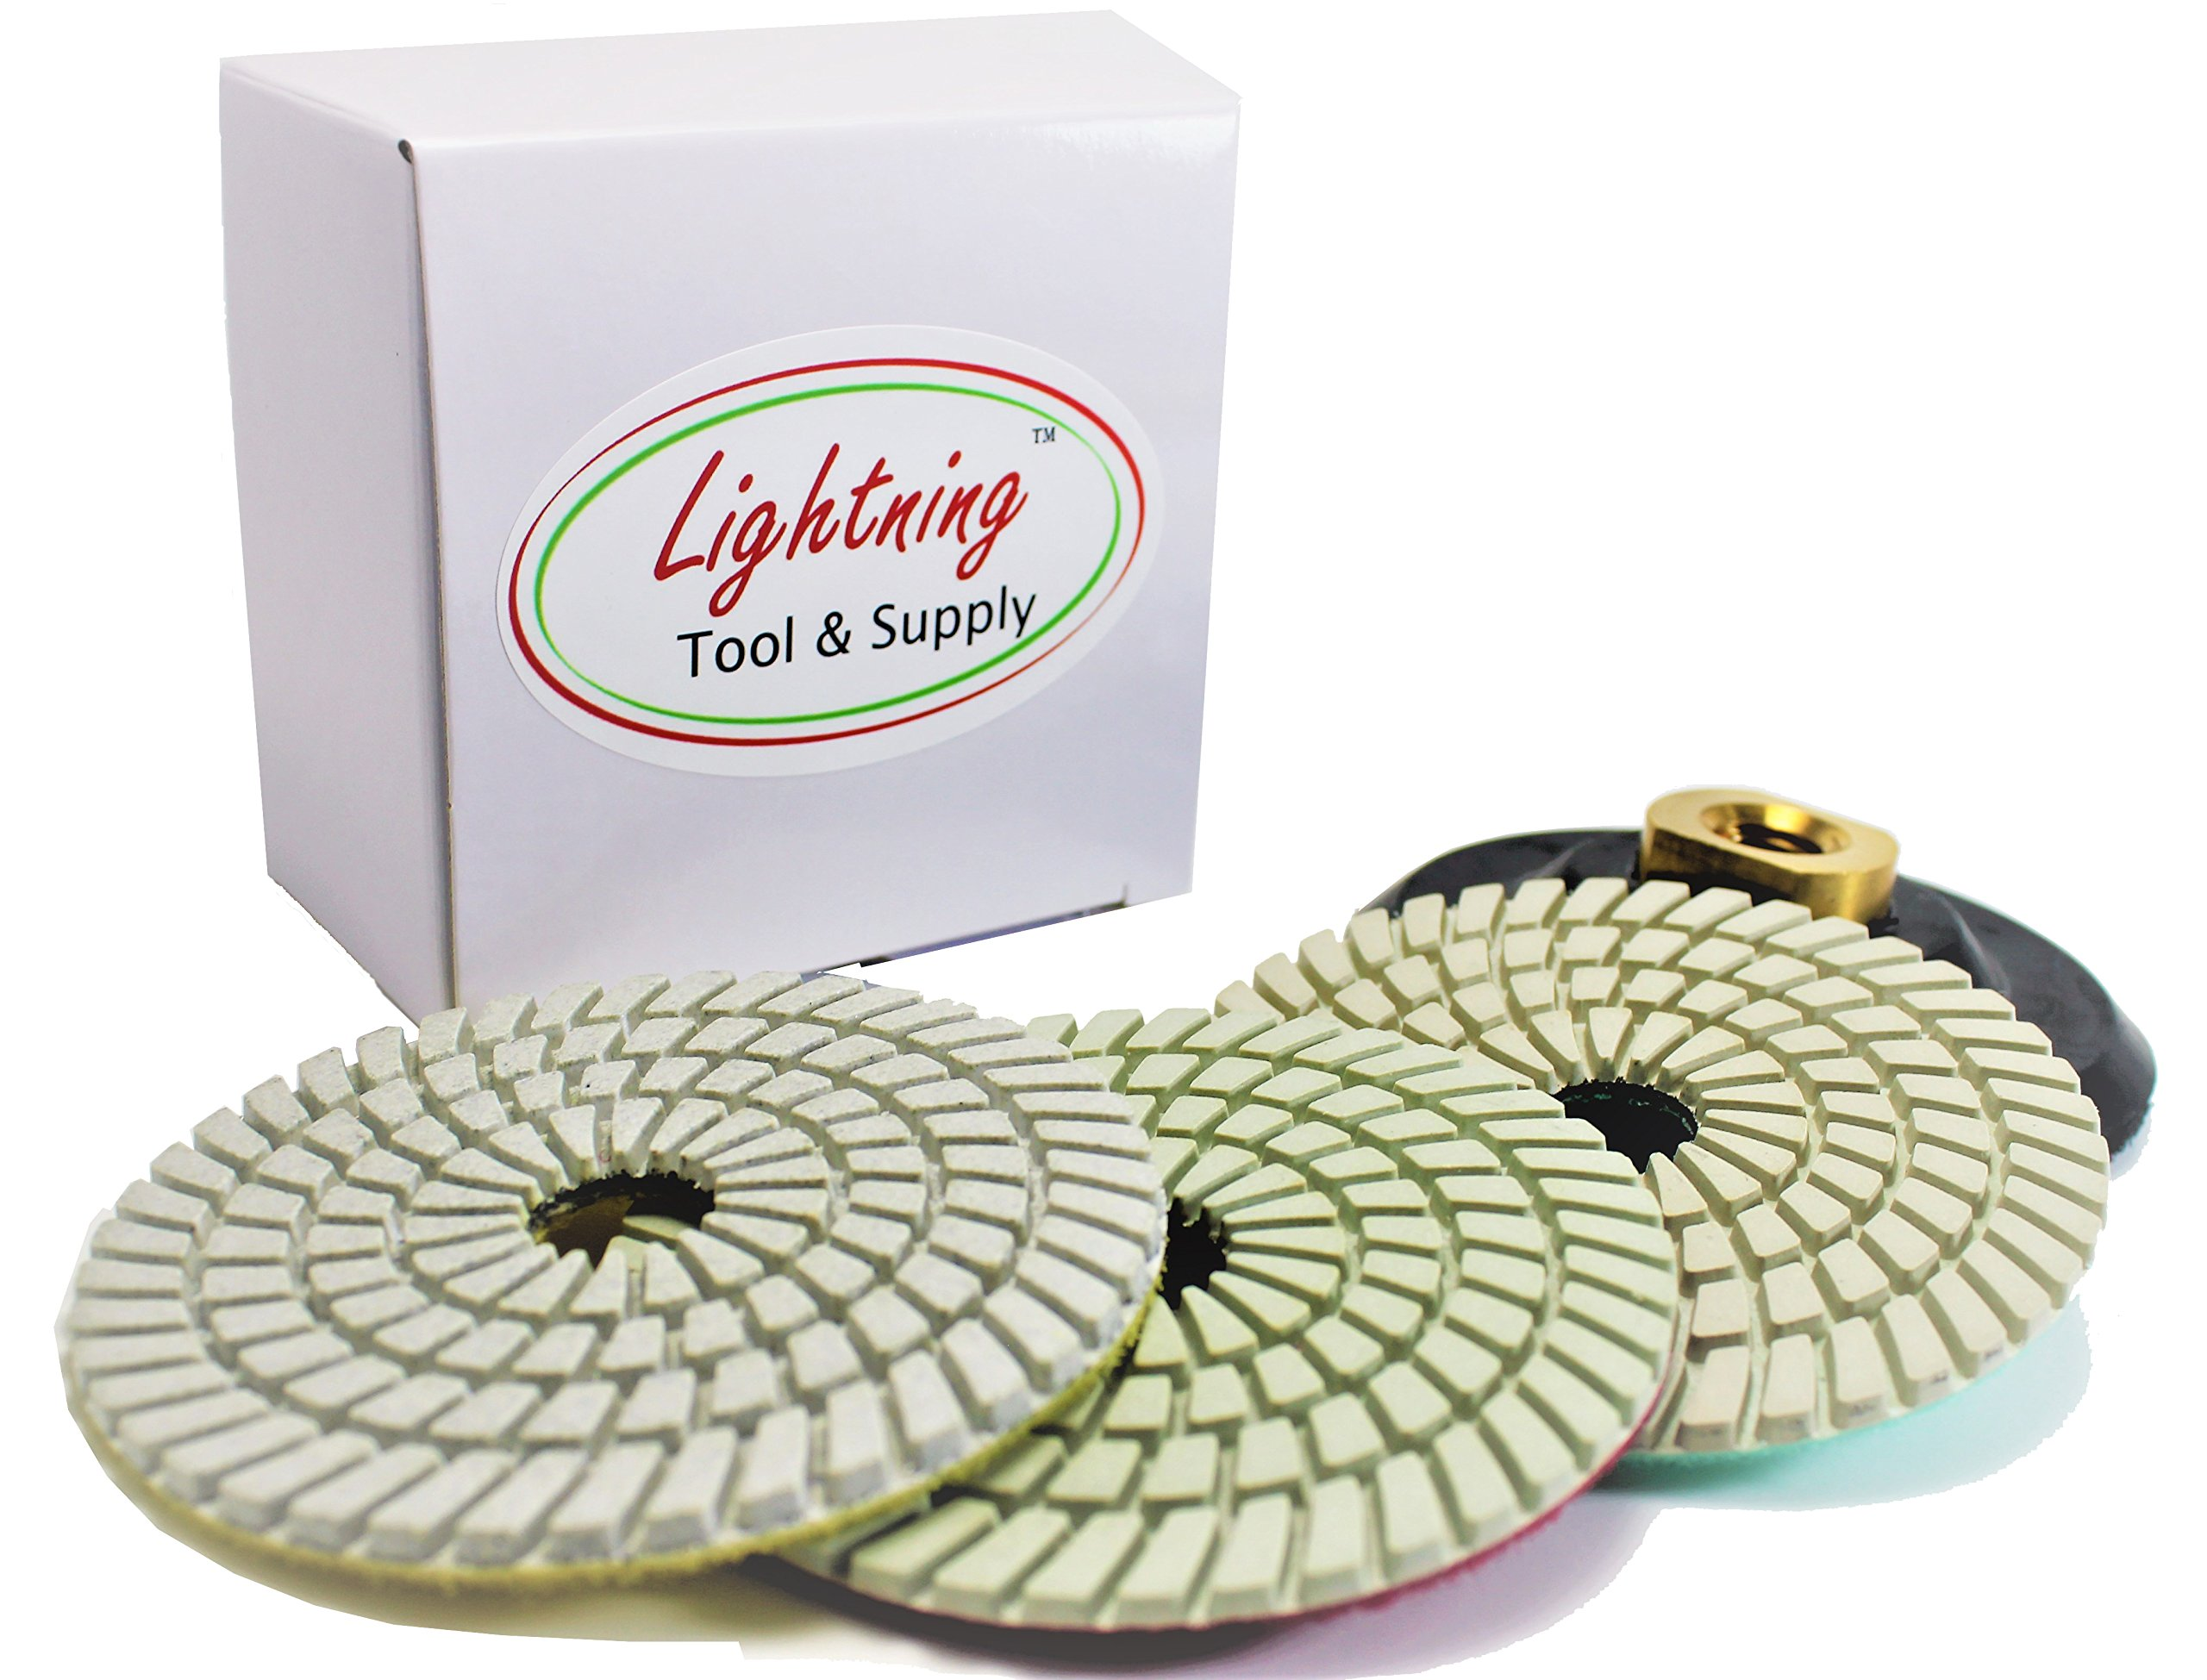 Lightning Tool & Supply Pro-Series 4'' Inch Wet/Dry Diamond Polishing Pads 3-Step Set with Rubber Backer for Granite, Marble, and Natural Stone